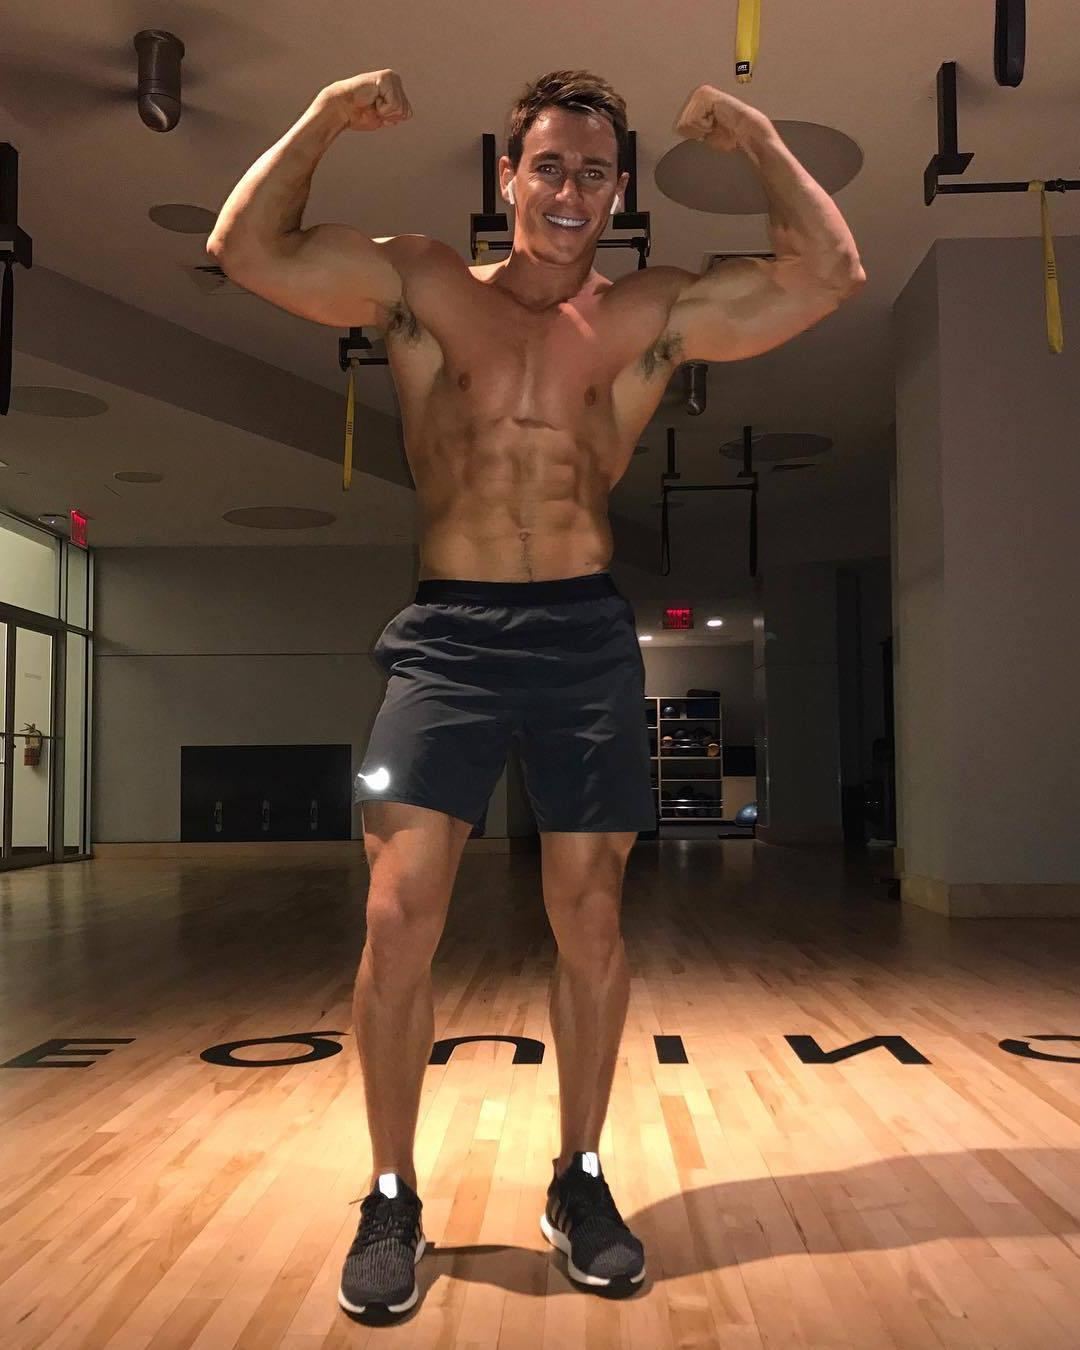 cute-gym-dude-smiling-fit-barechest-body-abs-flexing-biceps